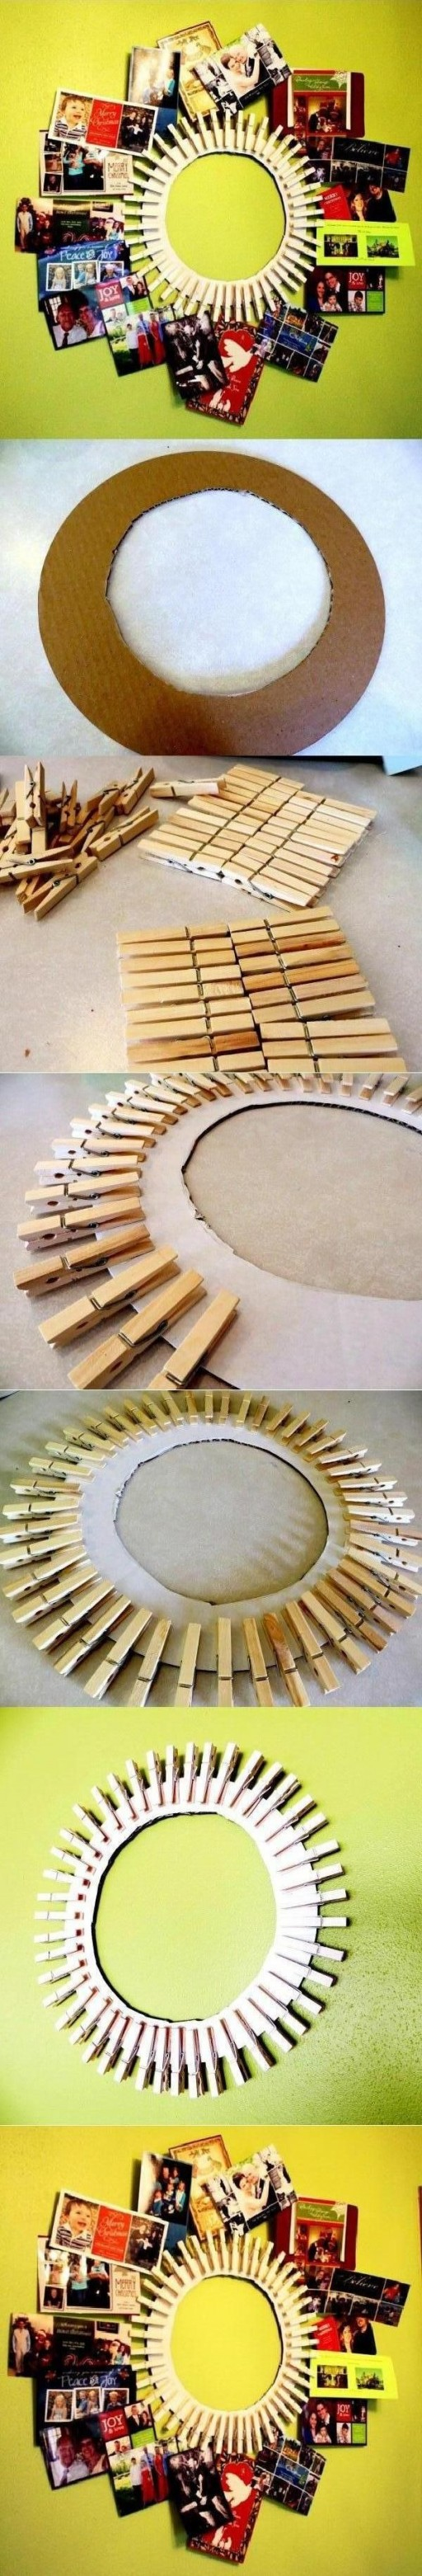 How to make cool DIY clothpin picture frame step by step tutorial instructions